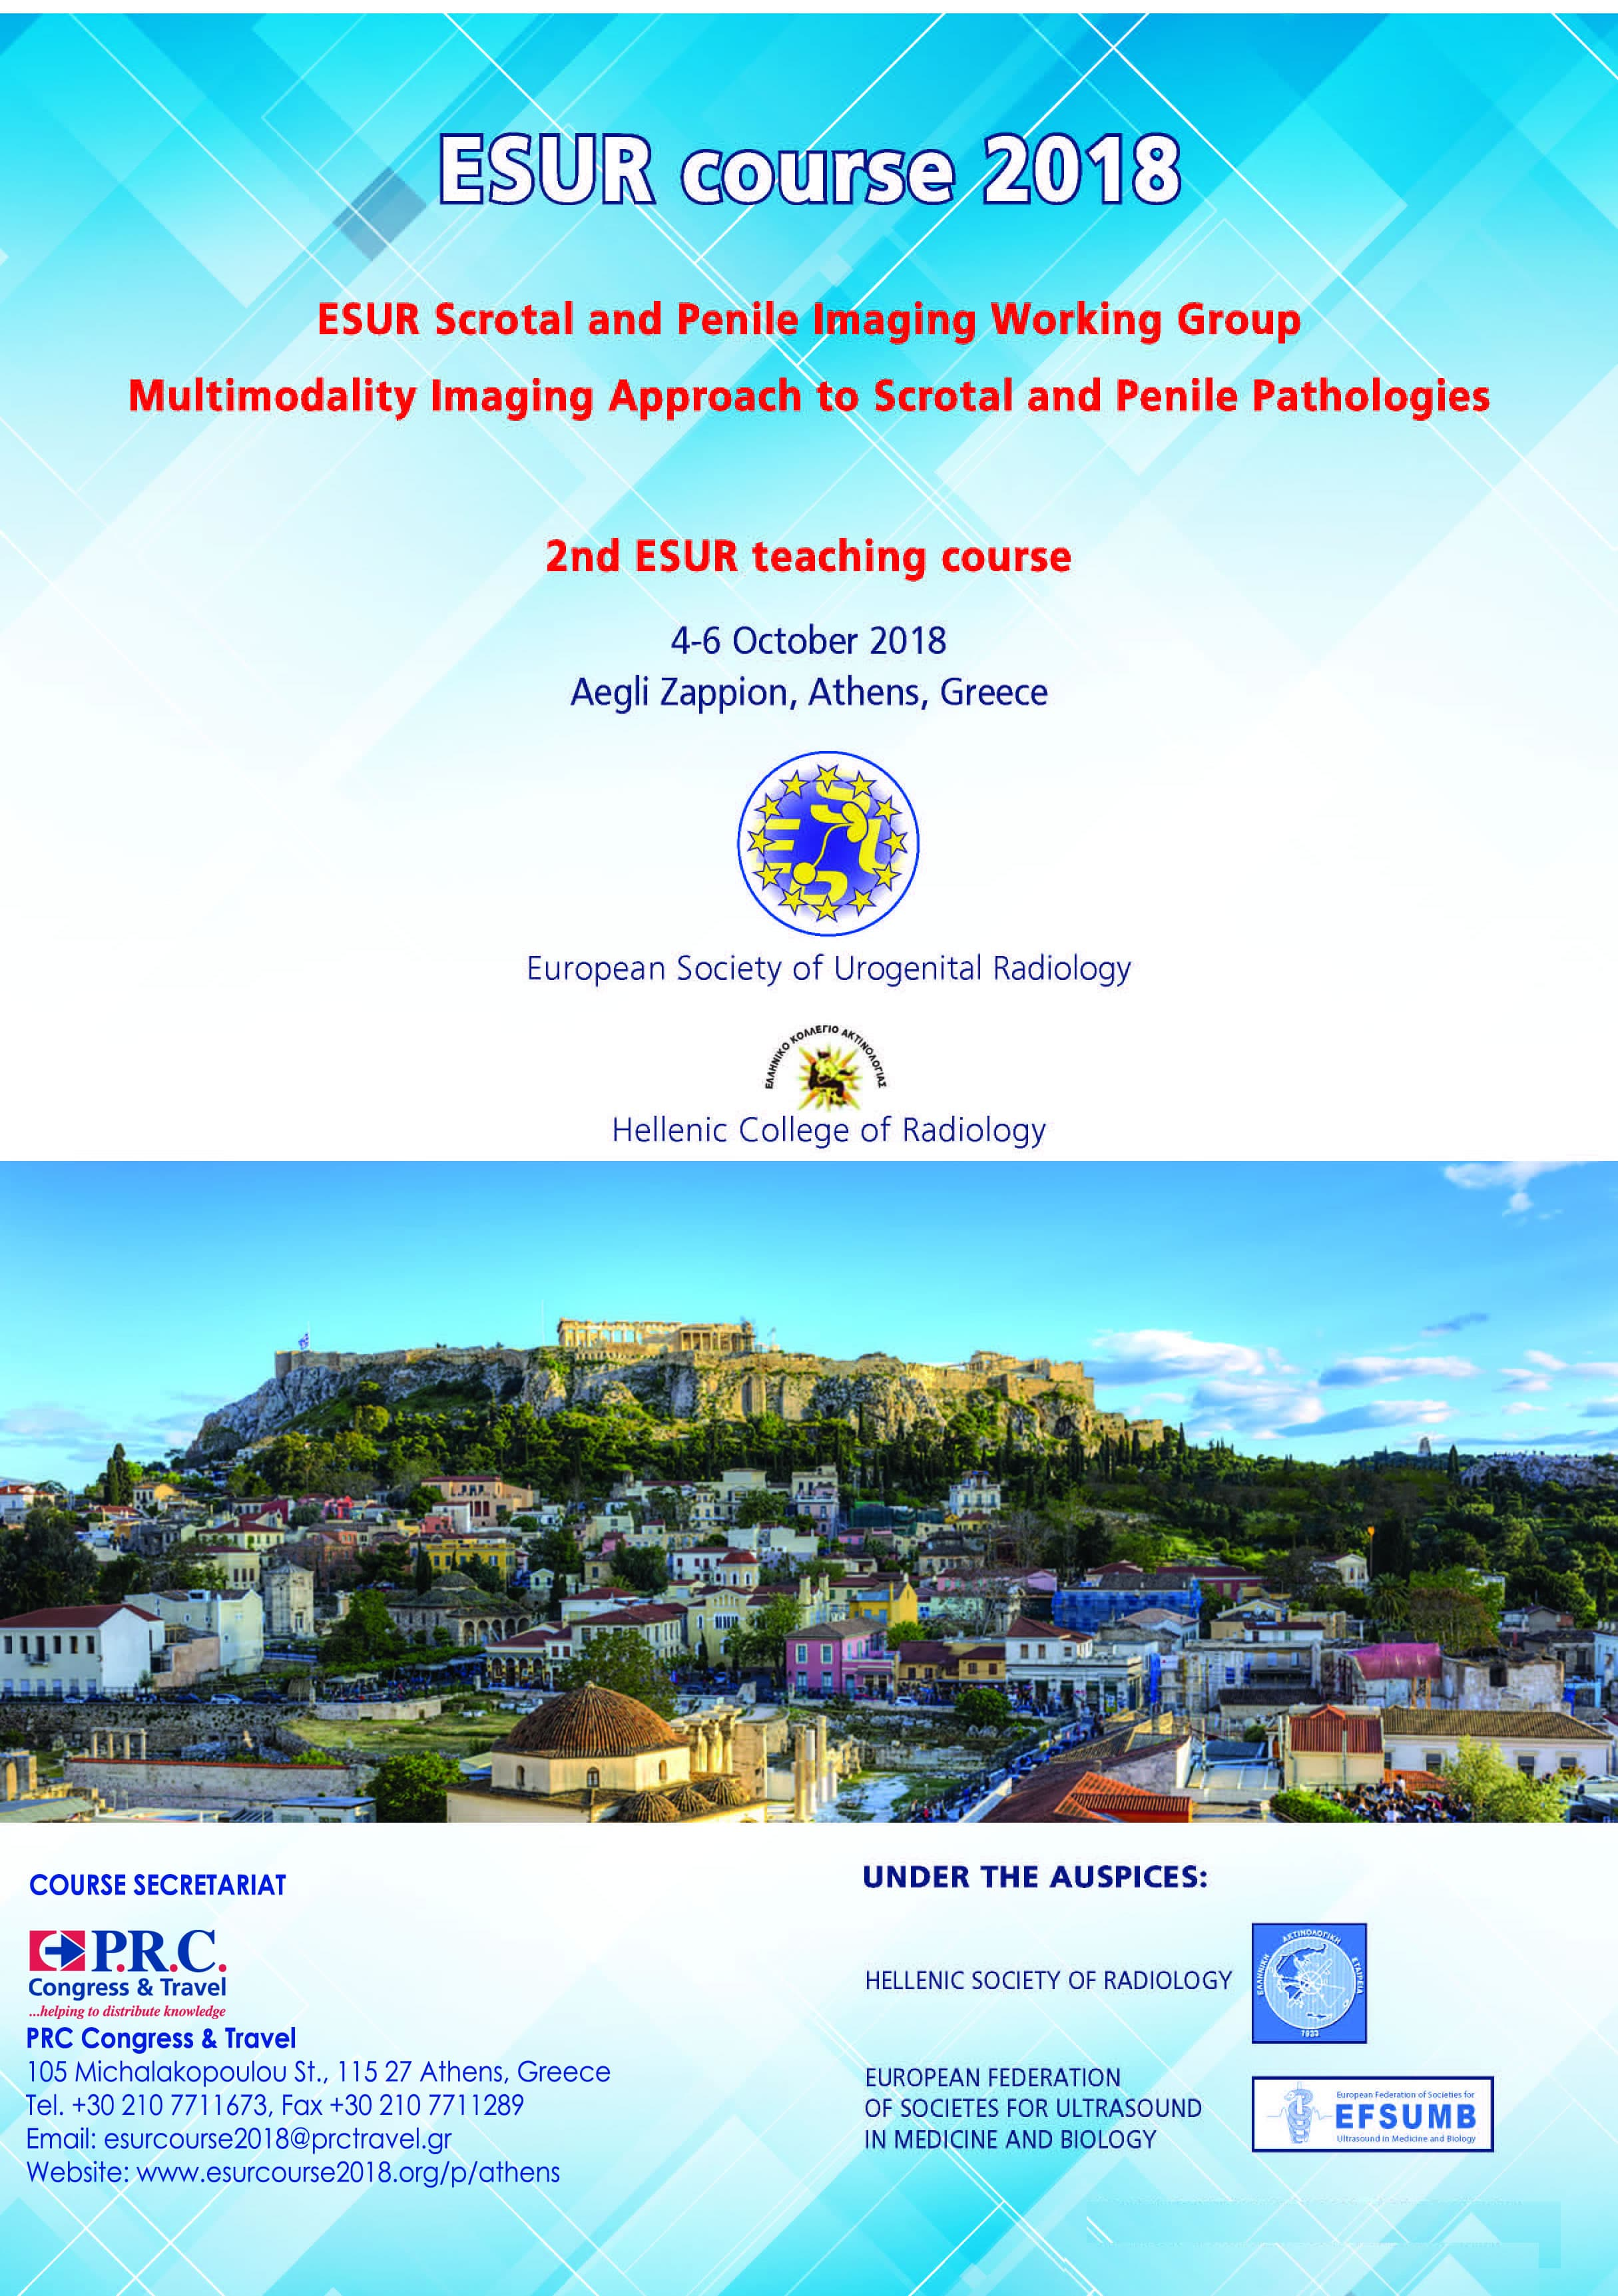 ESUR ATHENS COURSE 2018 FOR  PROMOTION jpg